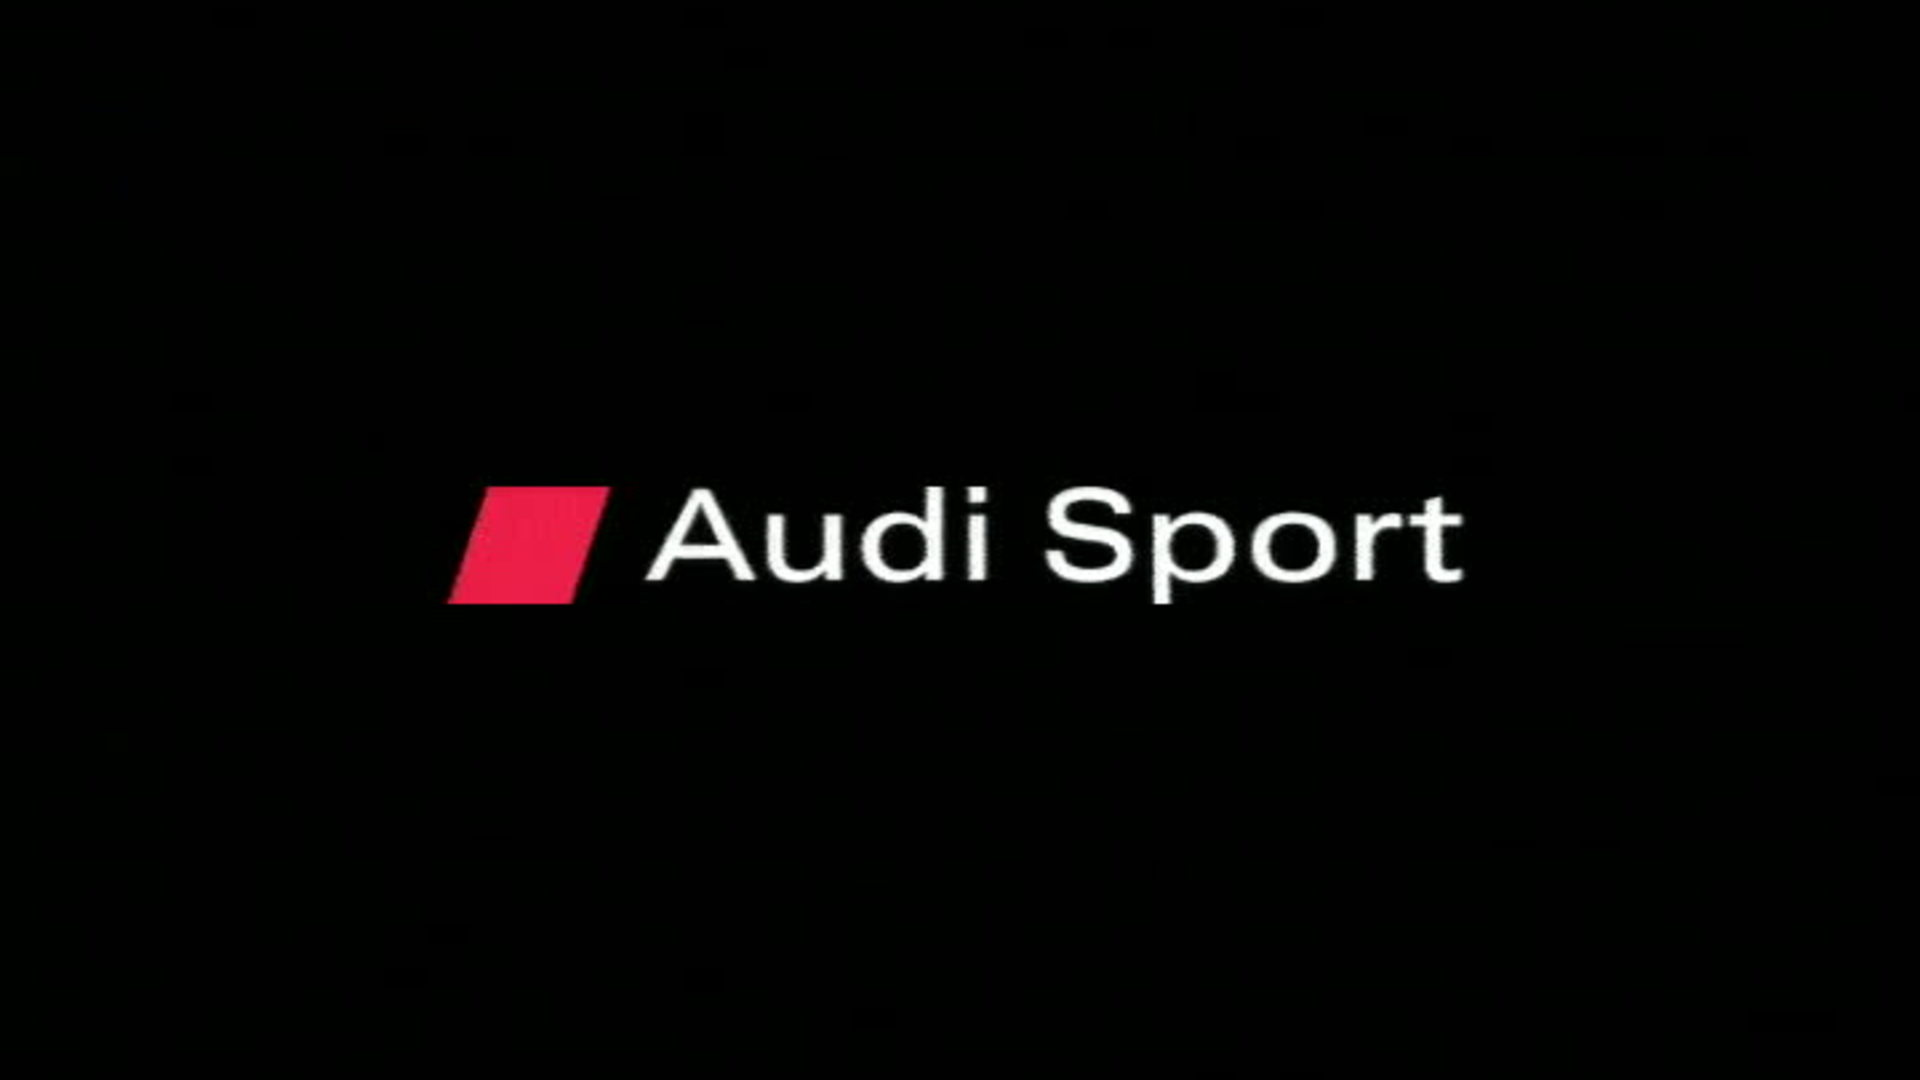 Audi R10 TDI – Development and Roll-Outs